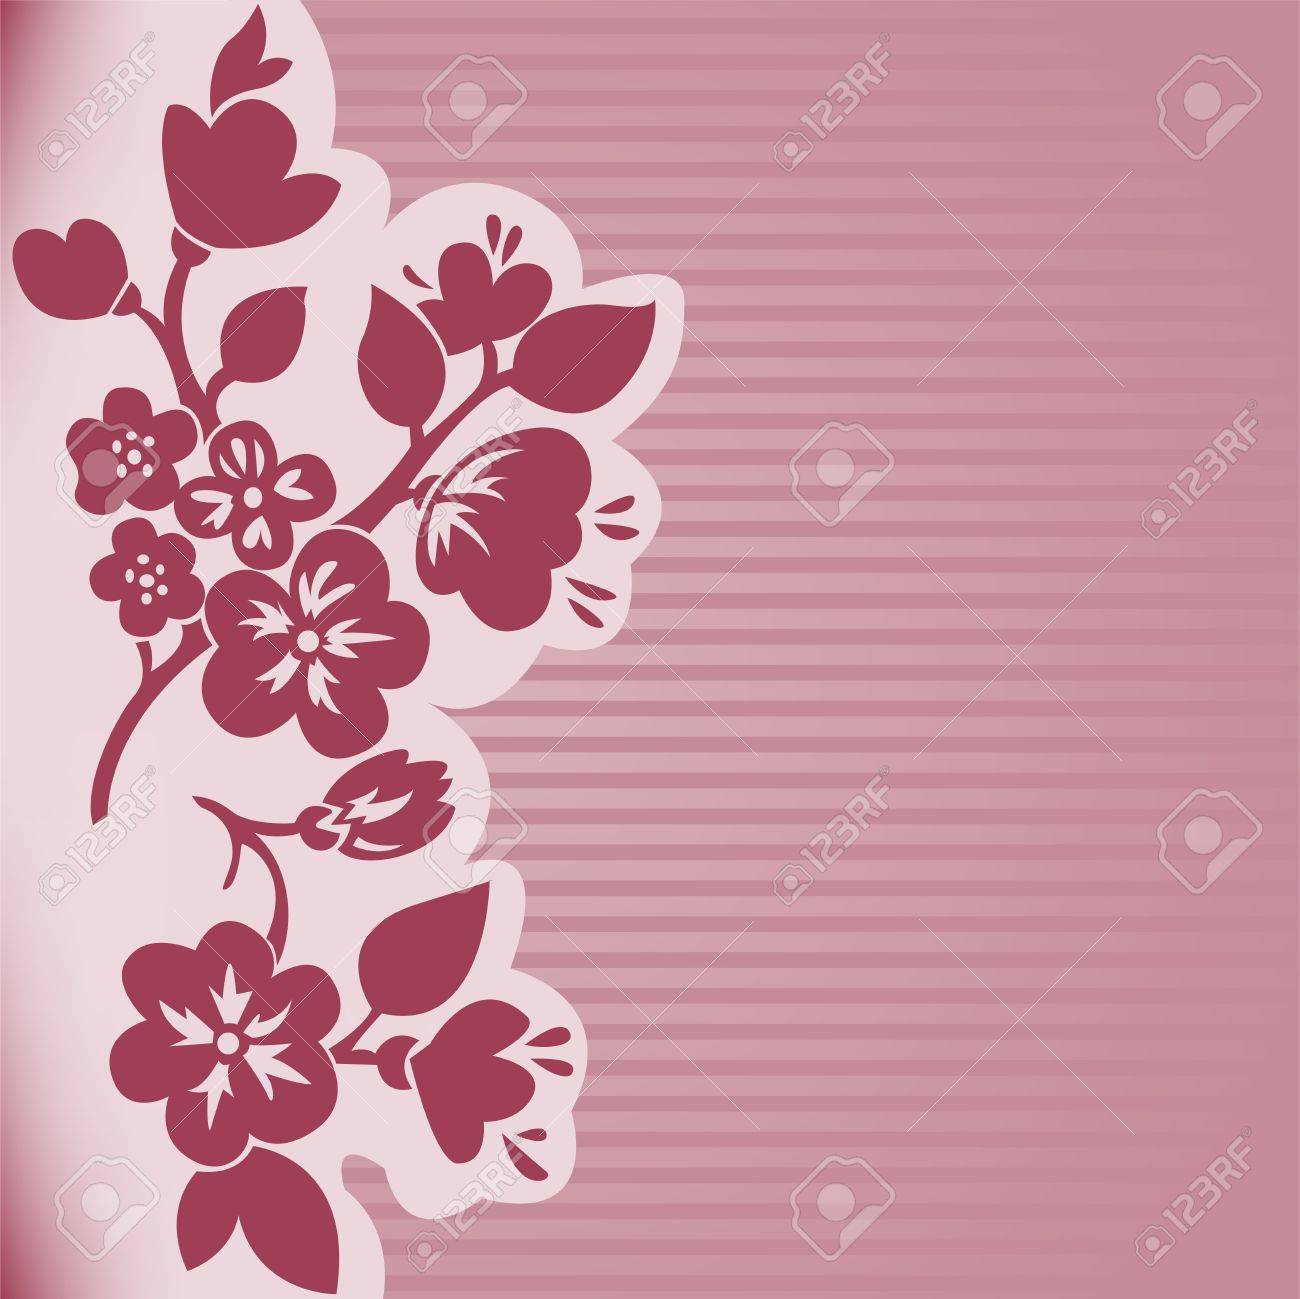 silhouette of flowering branch on a pink striped background Stock Vector - 9427021